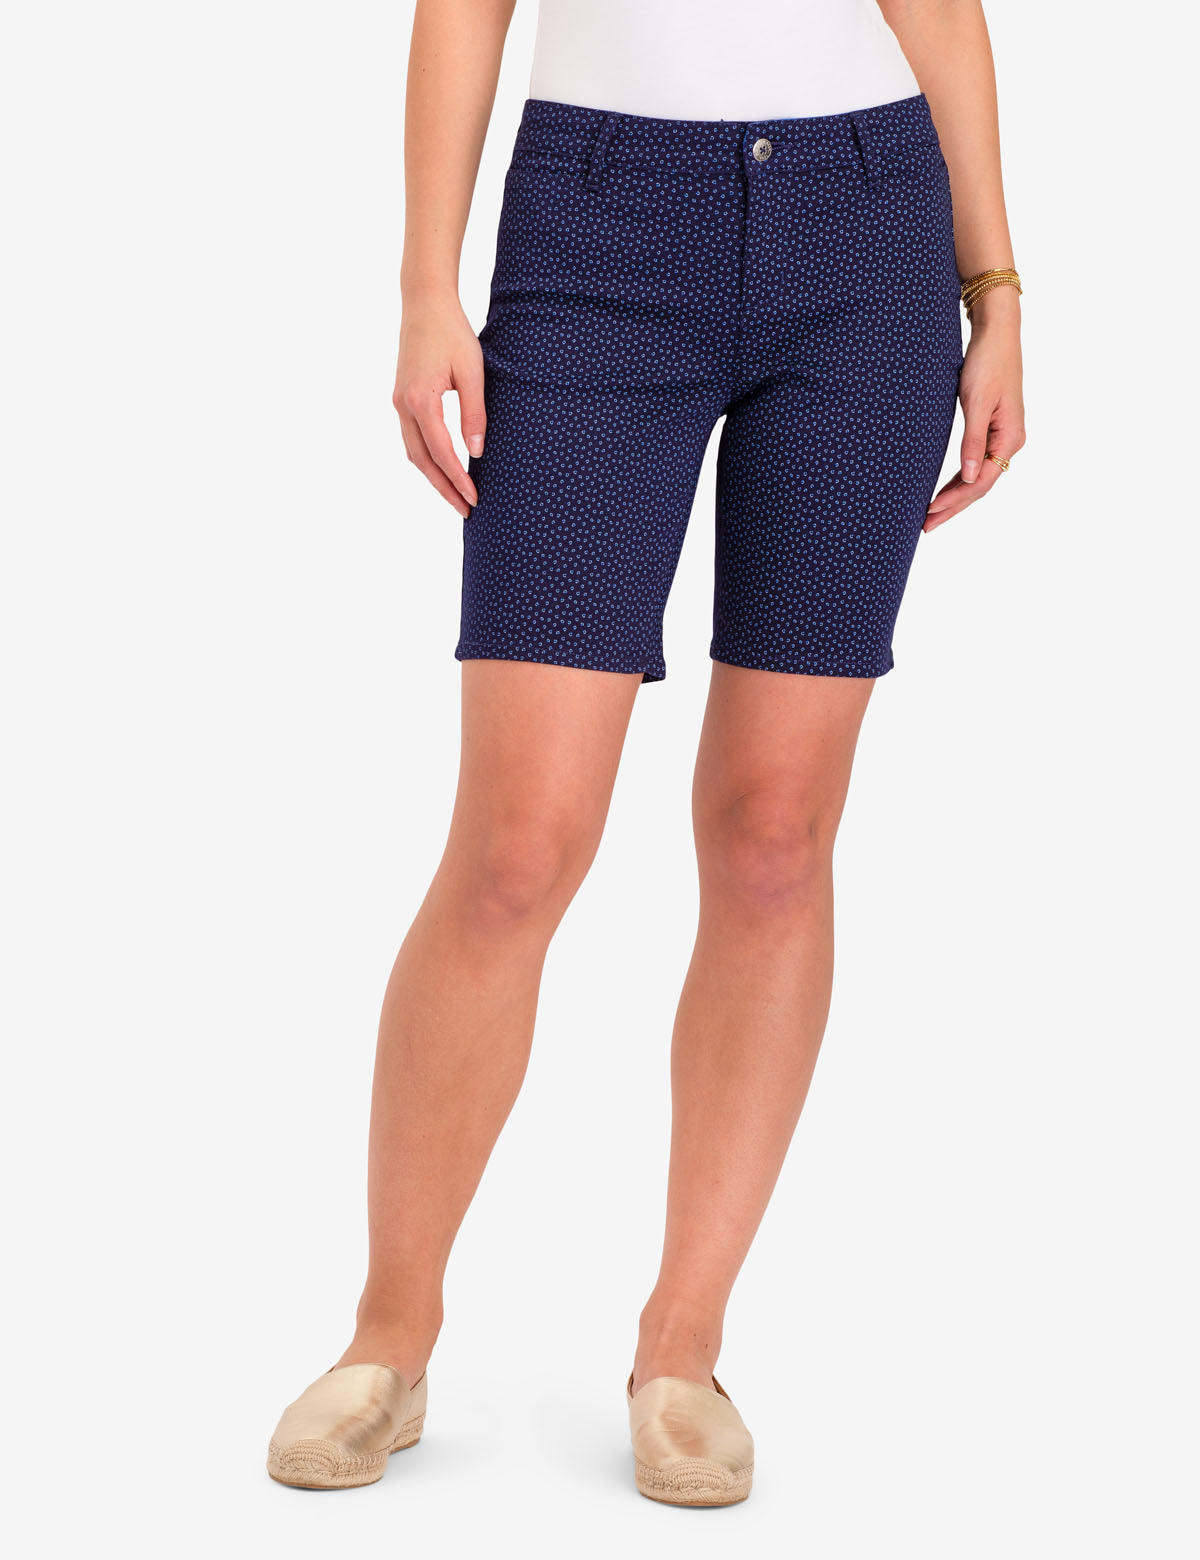 PRINT CHINO SHORTS - U.S. Polo Assn.